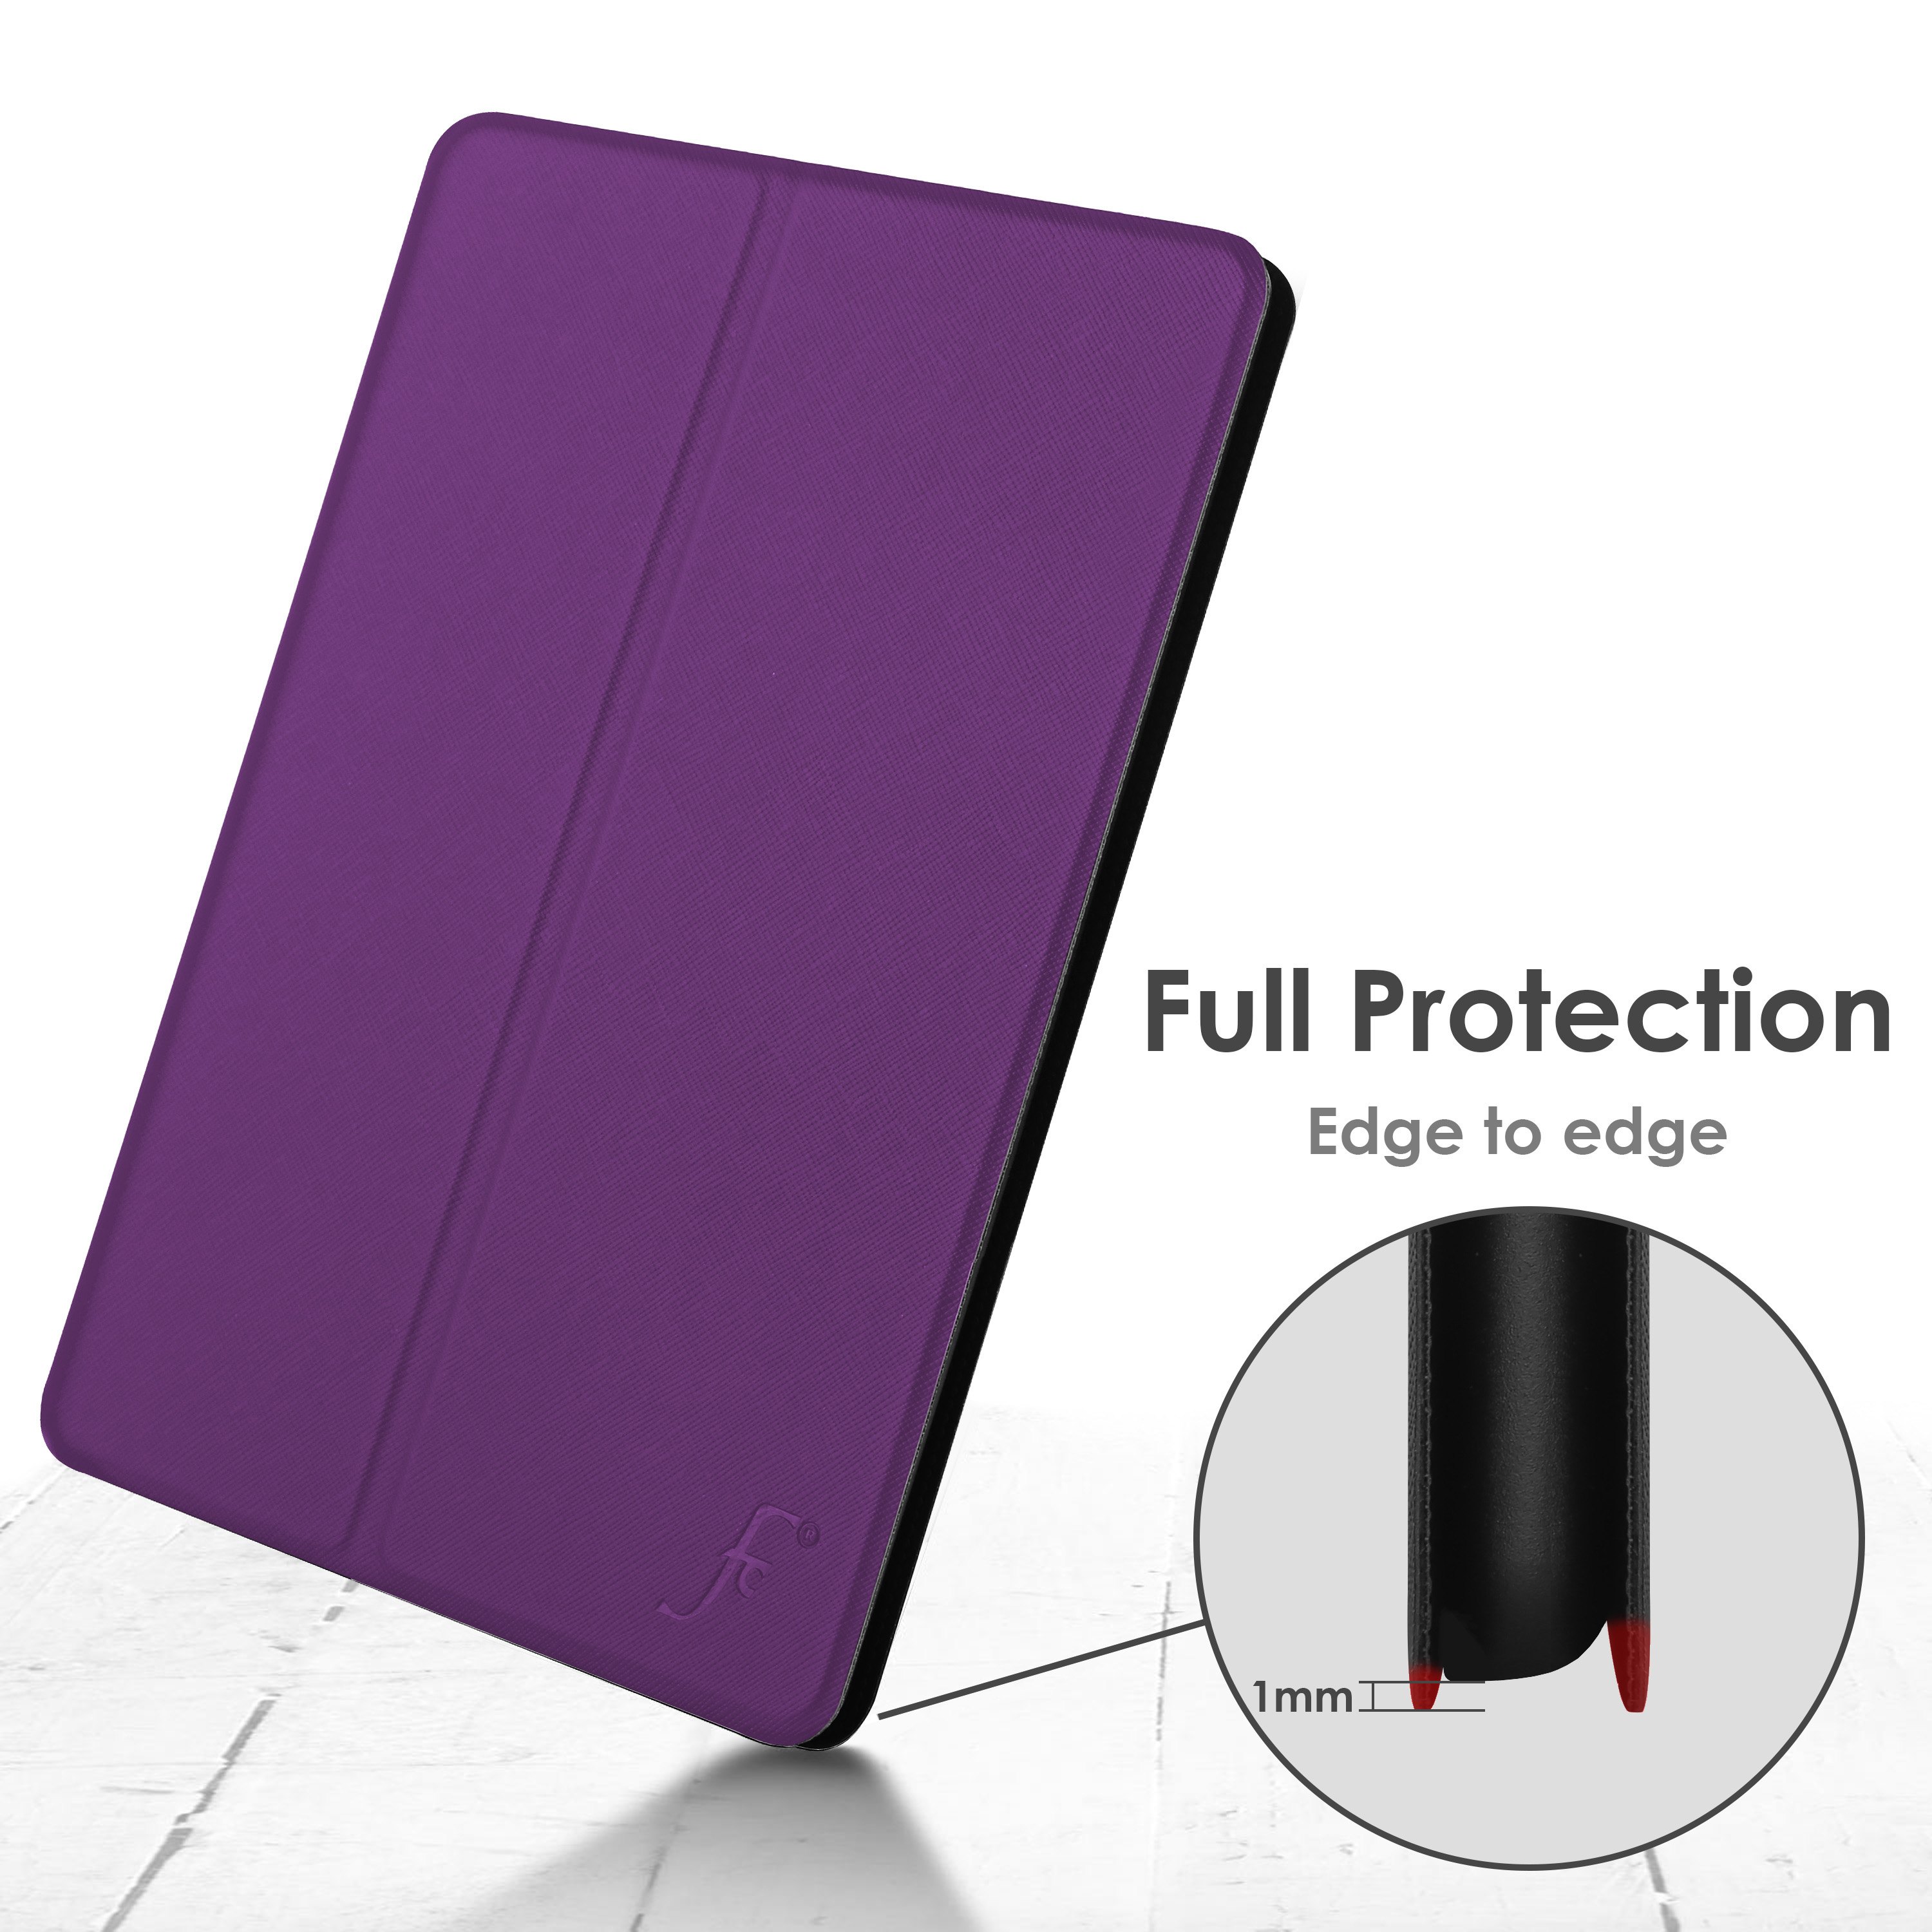 miniature 62 - Samsung Galaxy Tab A 10.1 2019 Étui Magnétique Protection & Support + Stylet